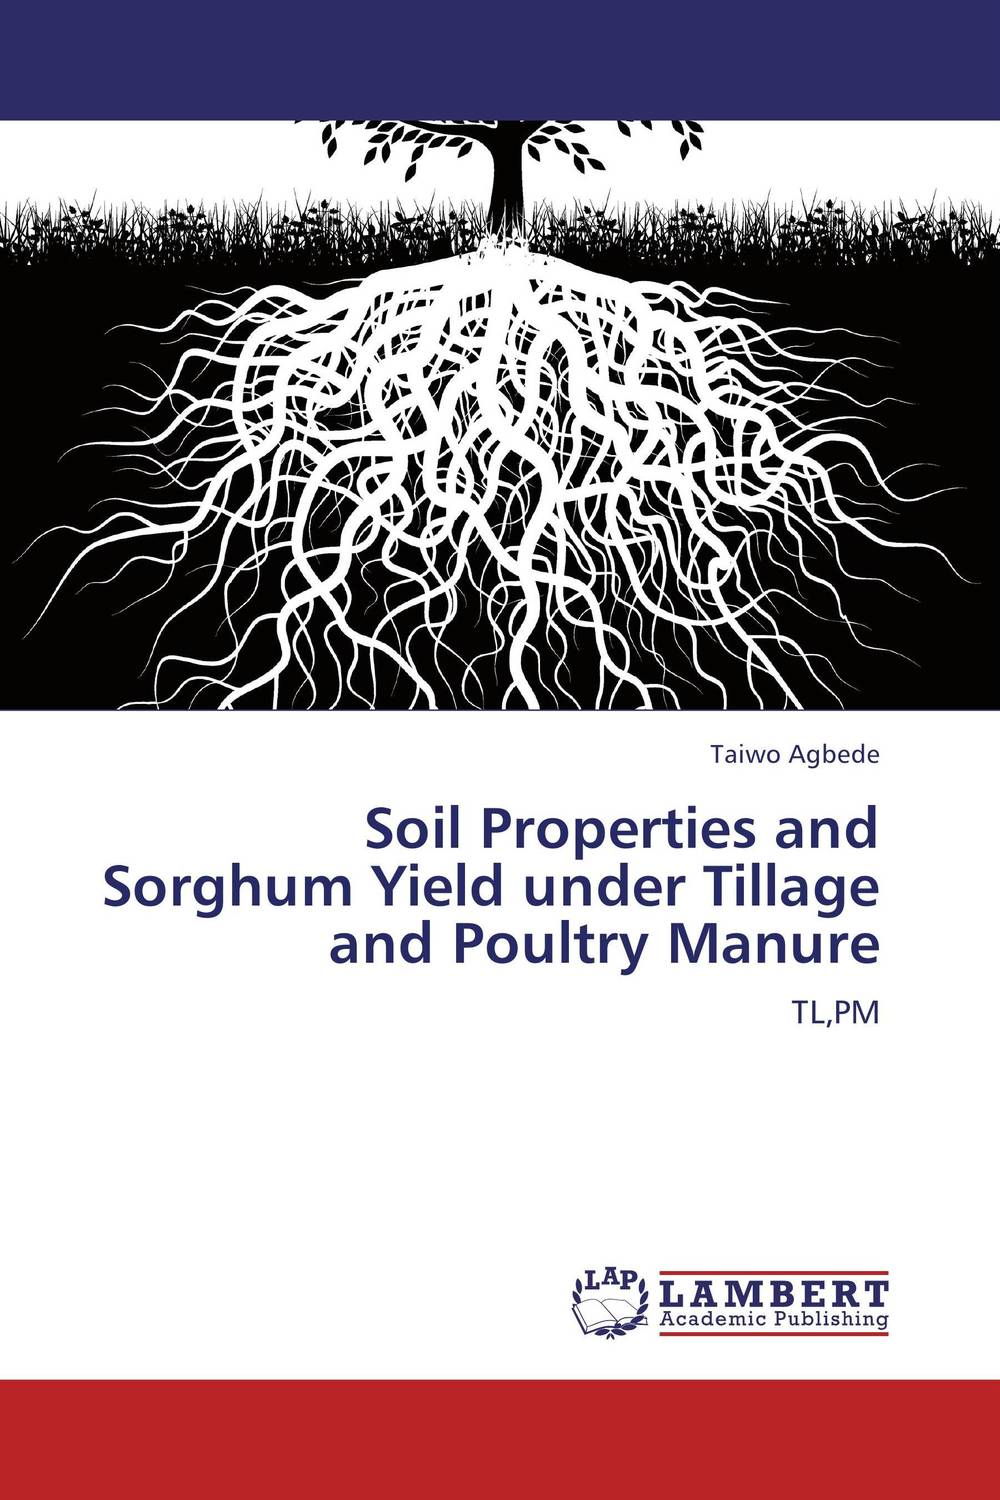 Zakazat.ru: Soil Properties and Sorghum Yield under Tillage and Poultry Manure